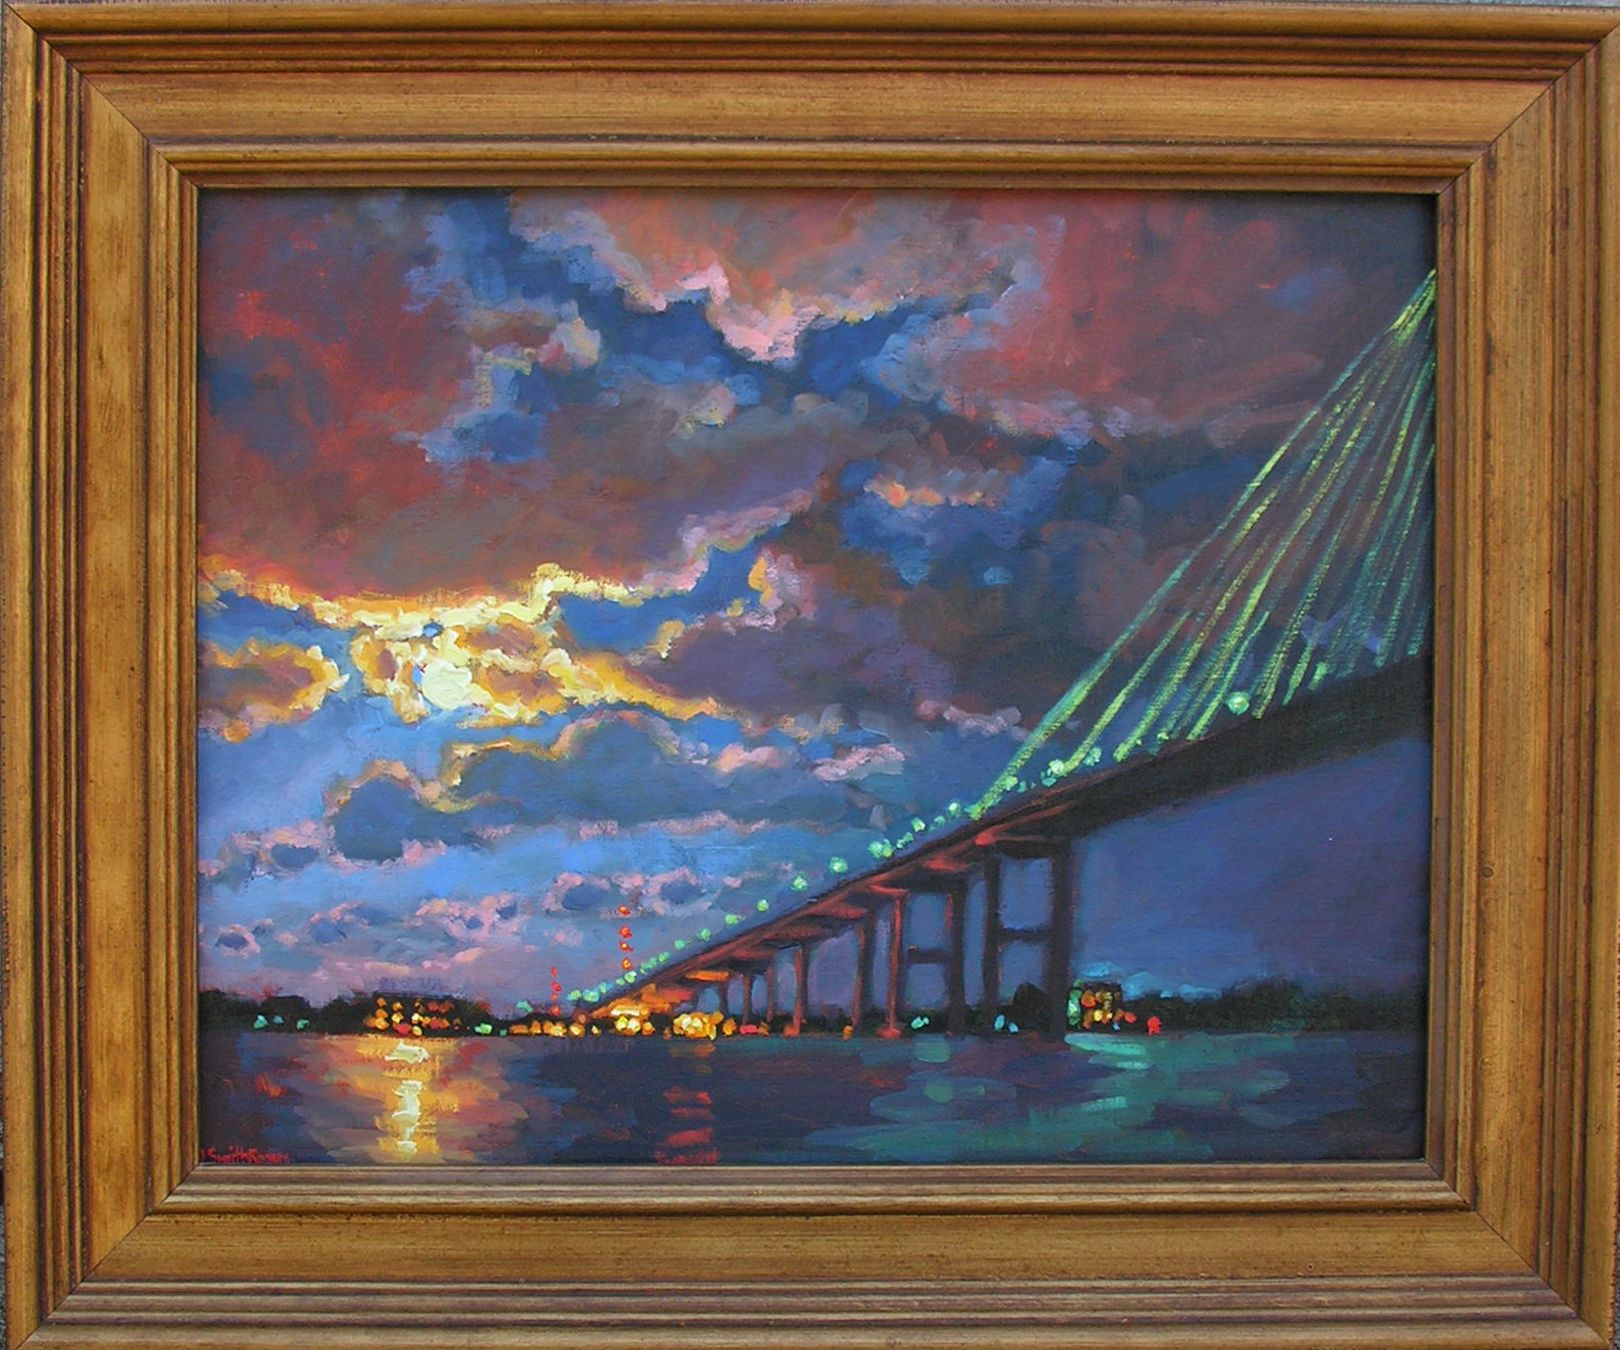 Cooper River Moon, Mount Pleasant, South Carolina. Painting by Jennifer Smith Rogers, Anglin Smith Fine Art (http://anglinsmith.com/)